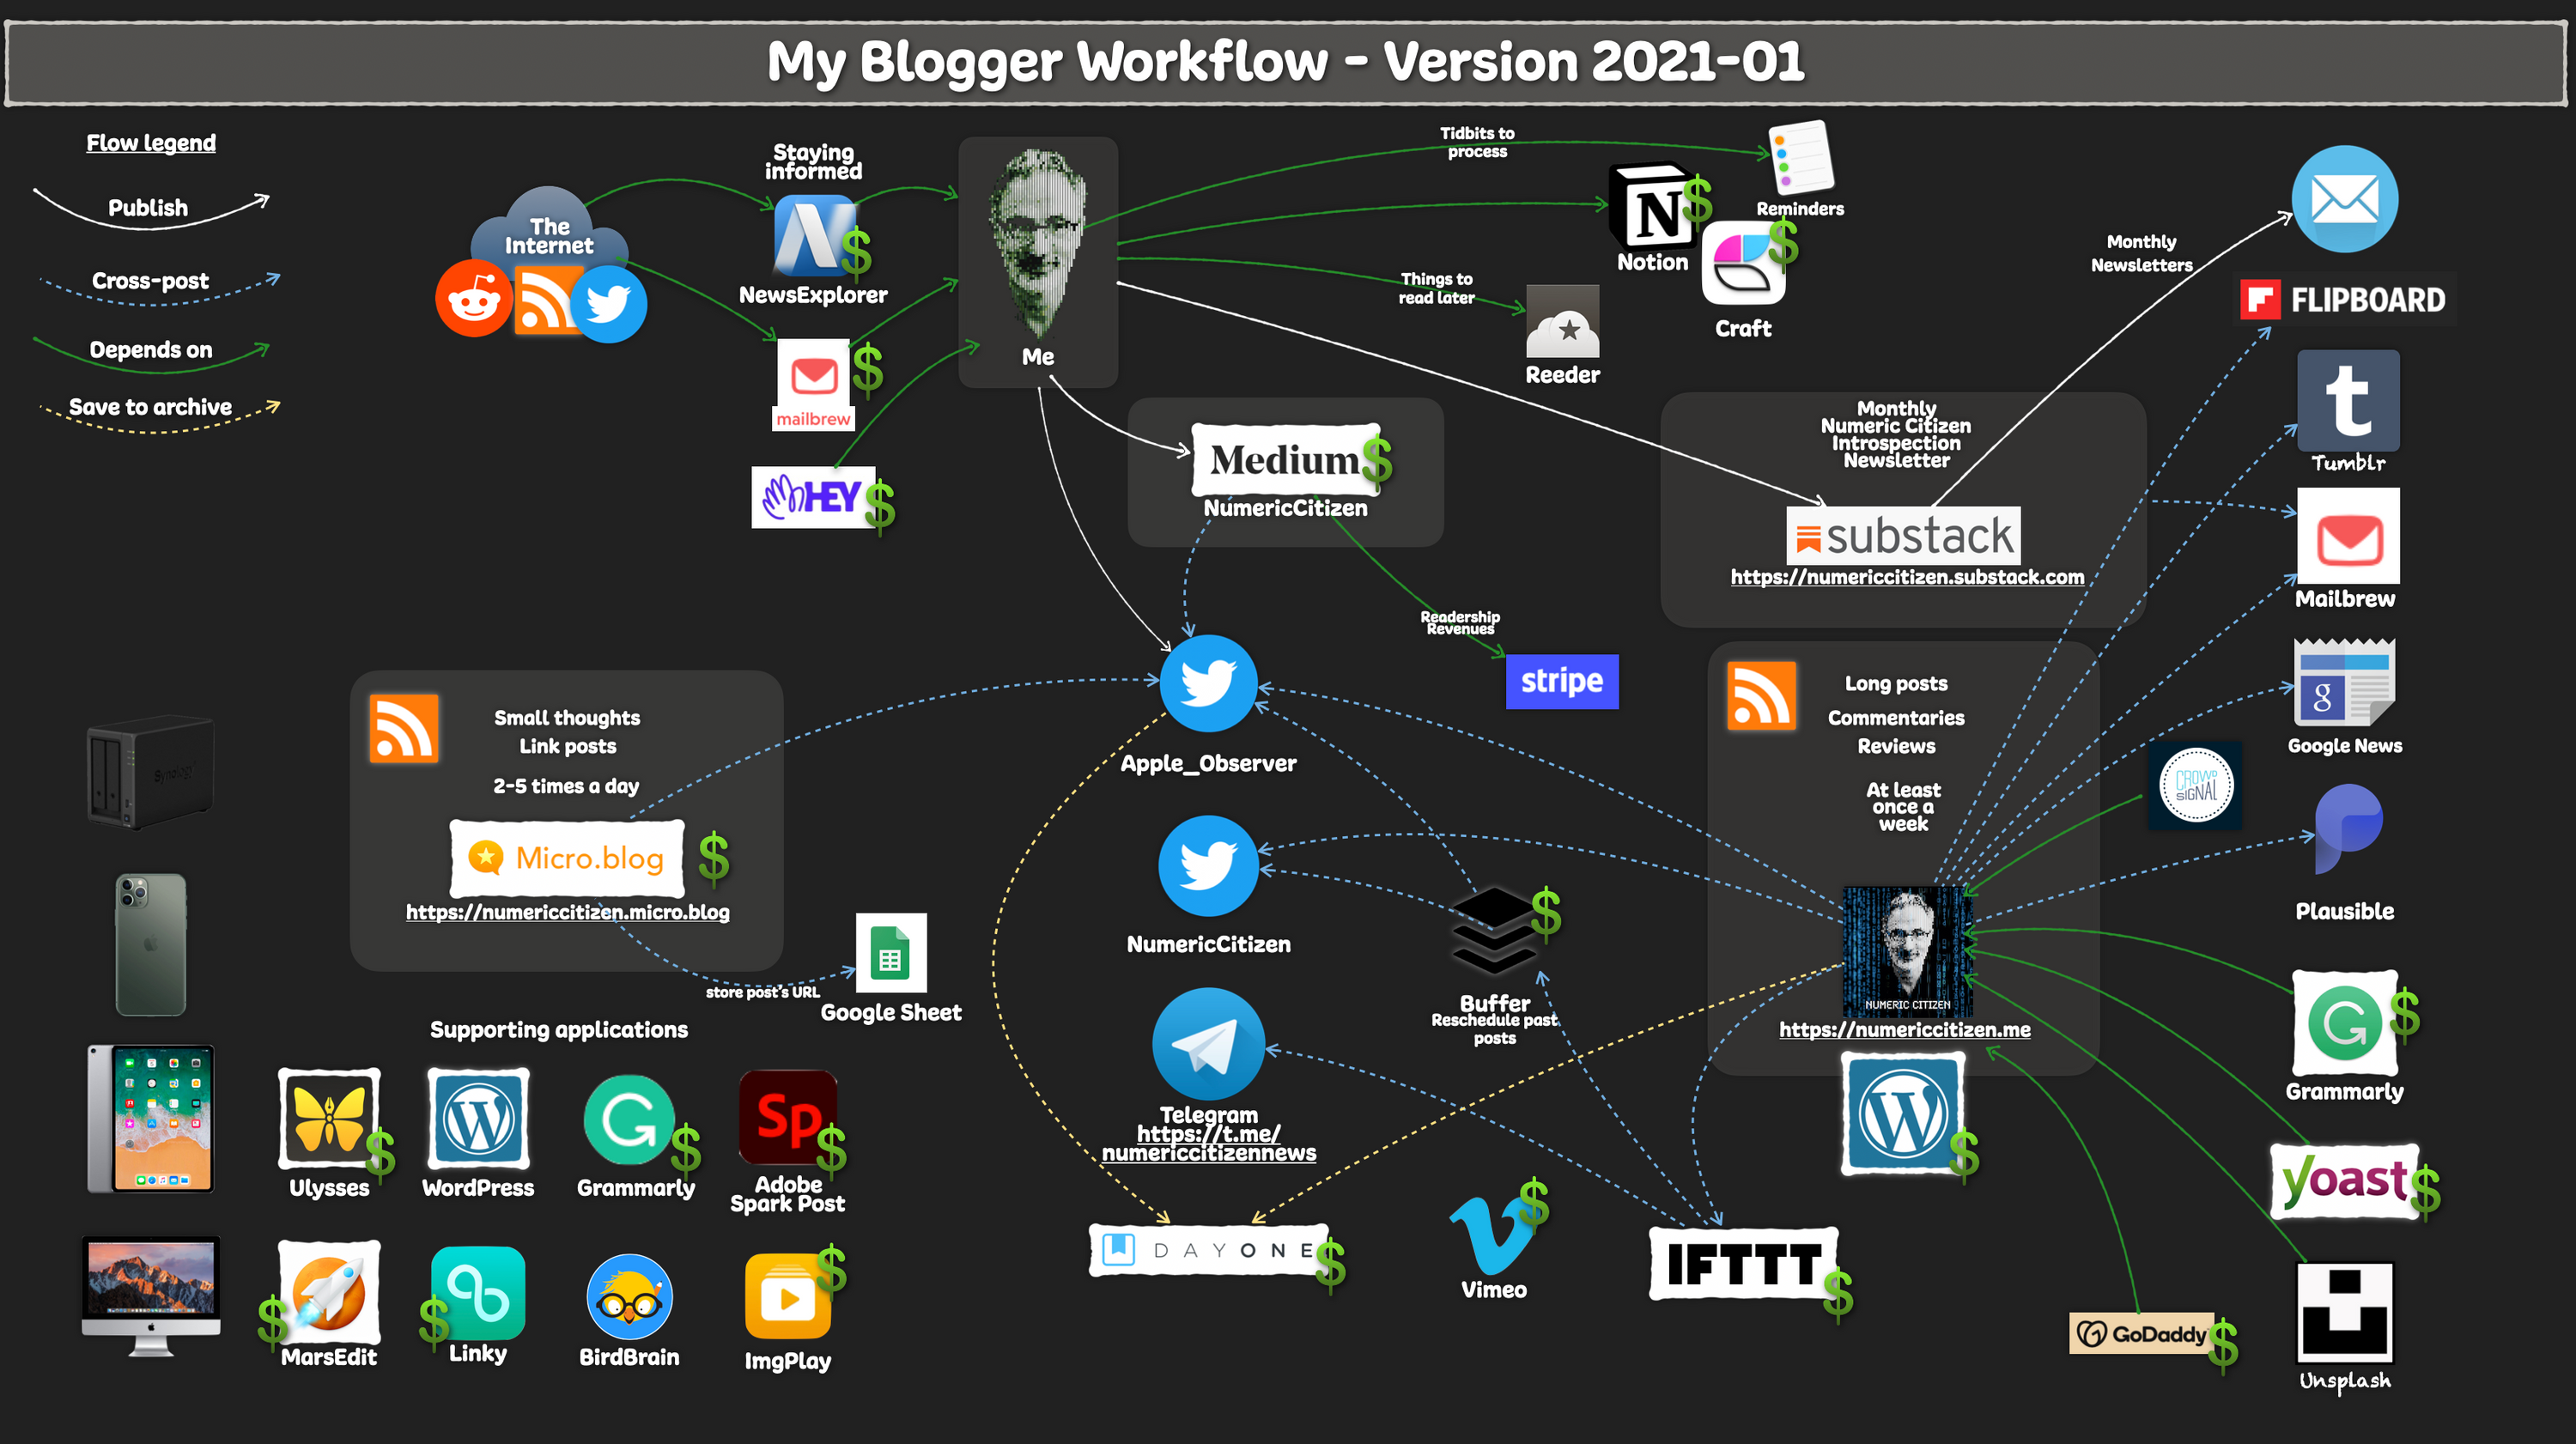 My blogger workflow as of 2021-01